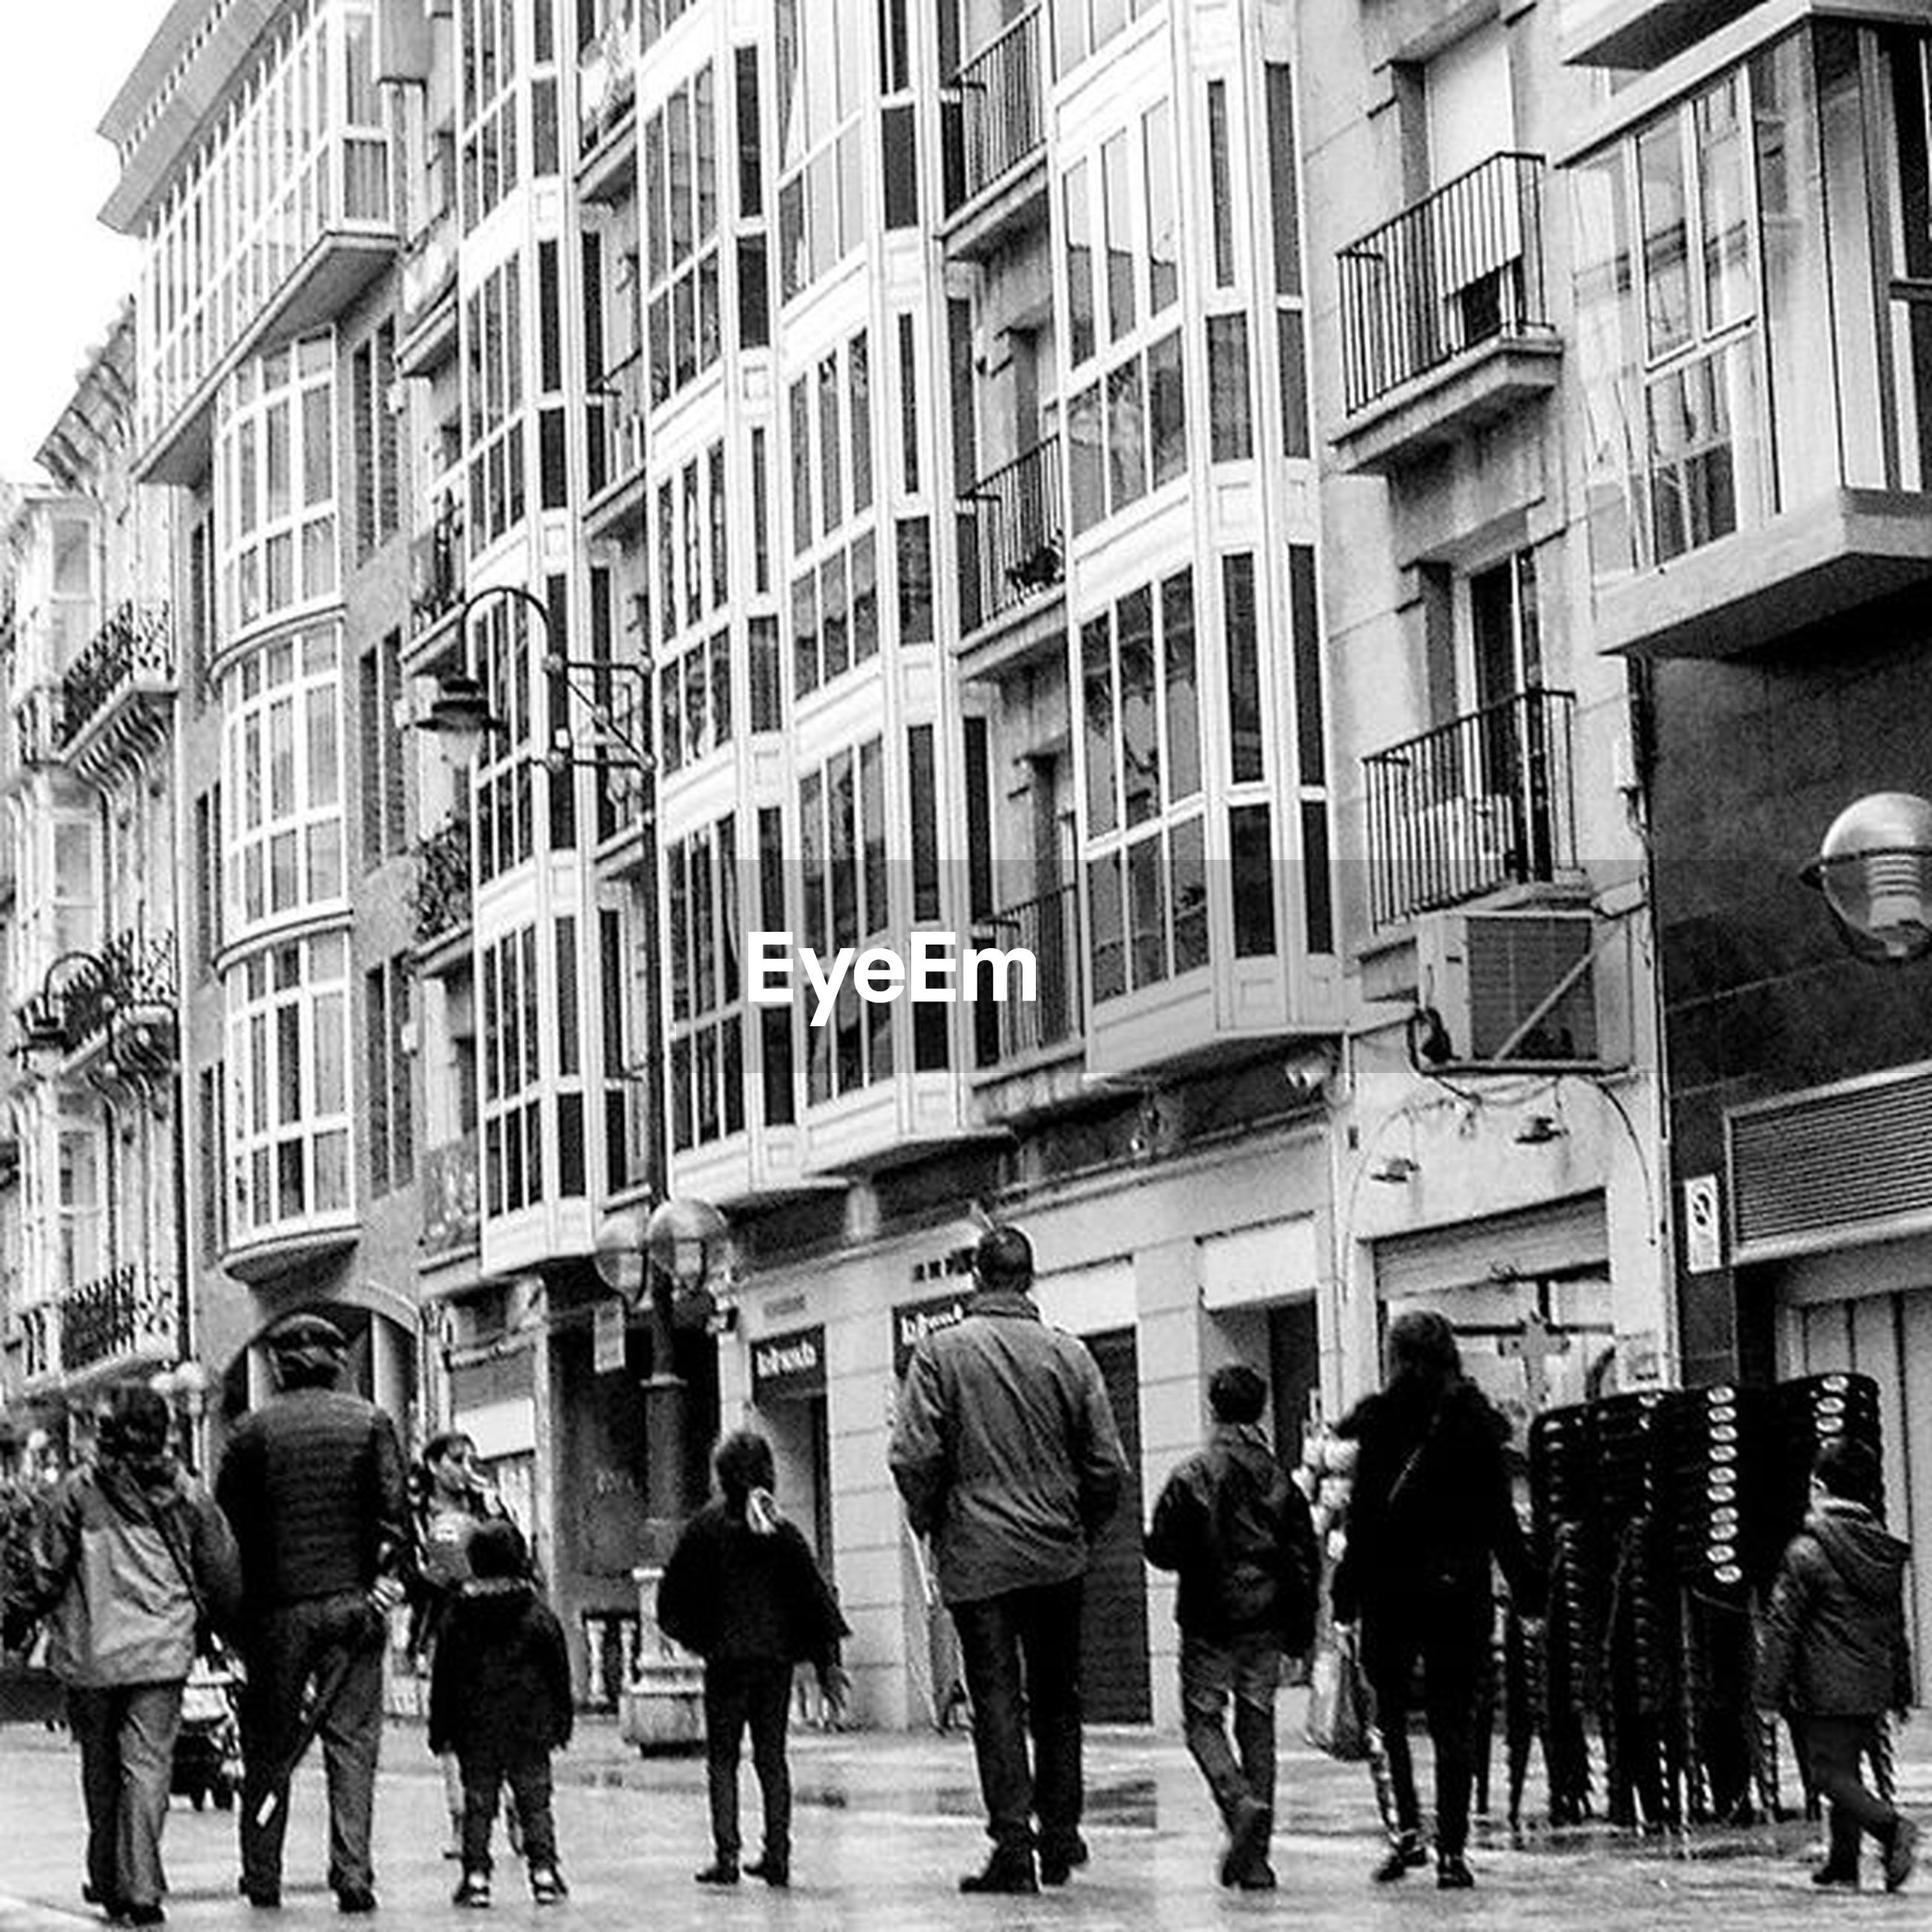 large group of people, architecture, building exterior, built structure, men, person, city, walking, city life, street, lifestyles, building, leisure activity, day, crowd, mixed age range, city street, outdoors, window